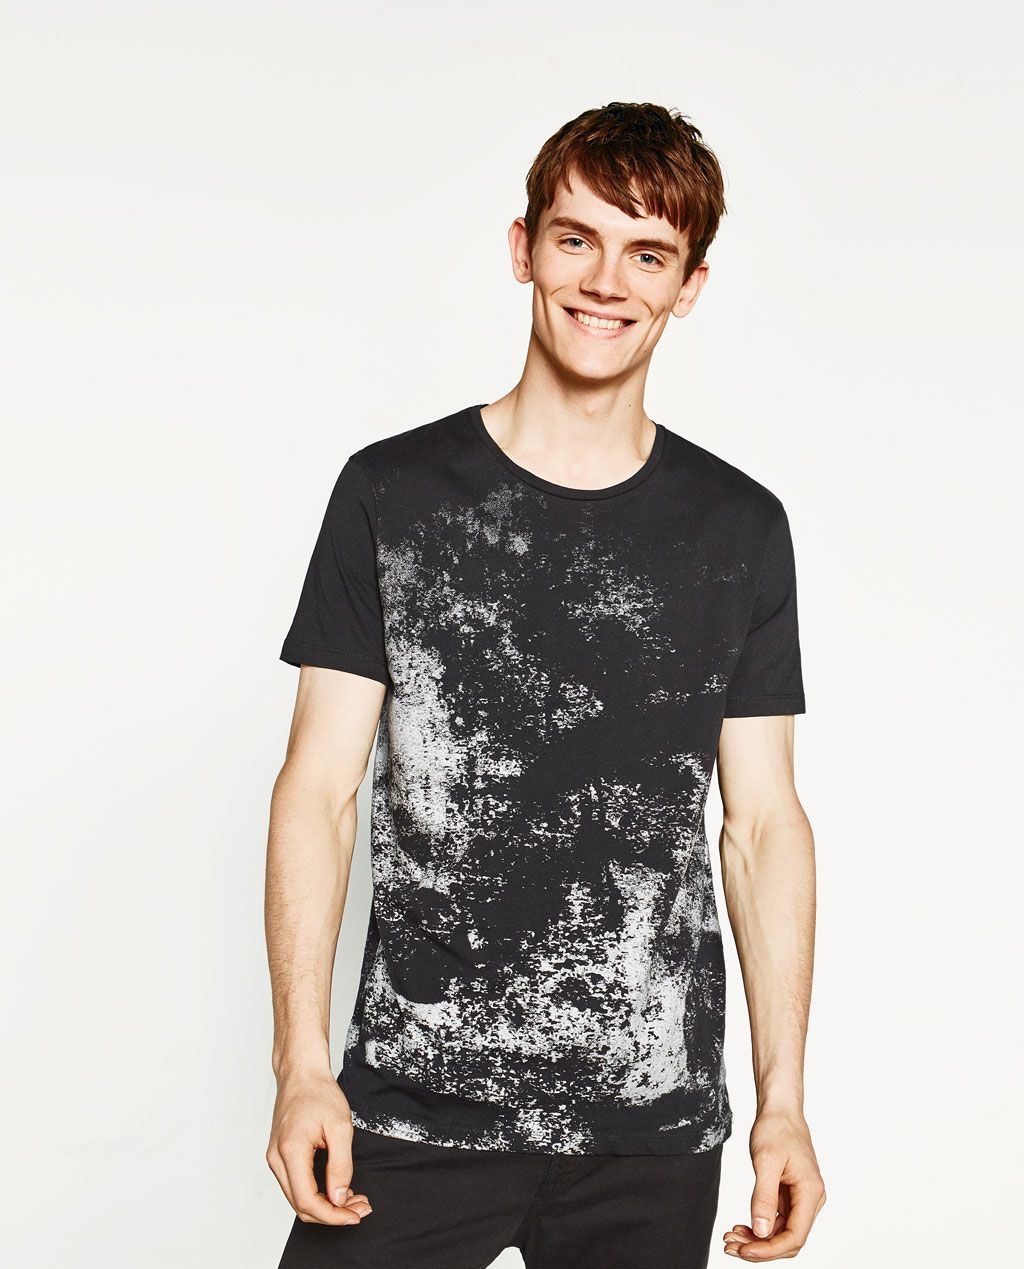 Explore Silver T Shirts, S Man, and more!